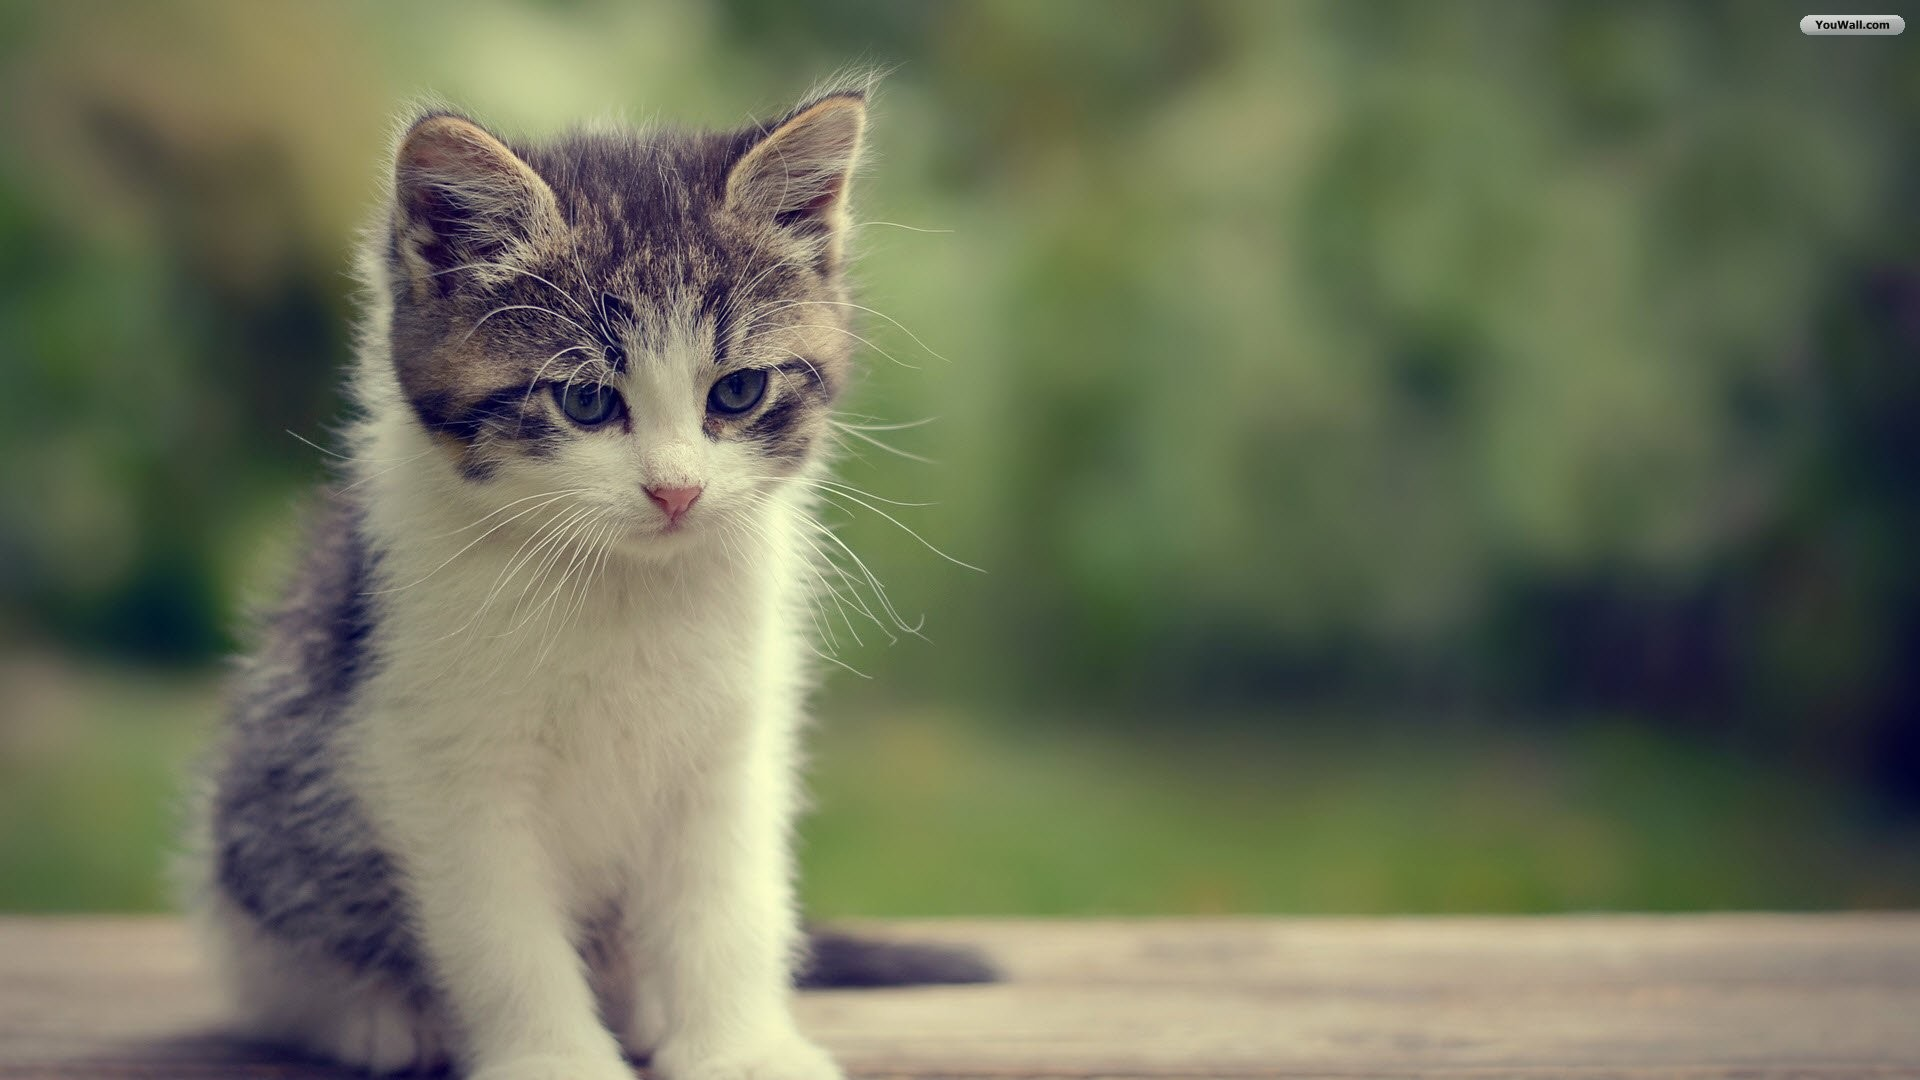 1920x1080 Cats images Beautiful Kitty HD wallpaper and background photos